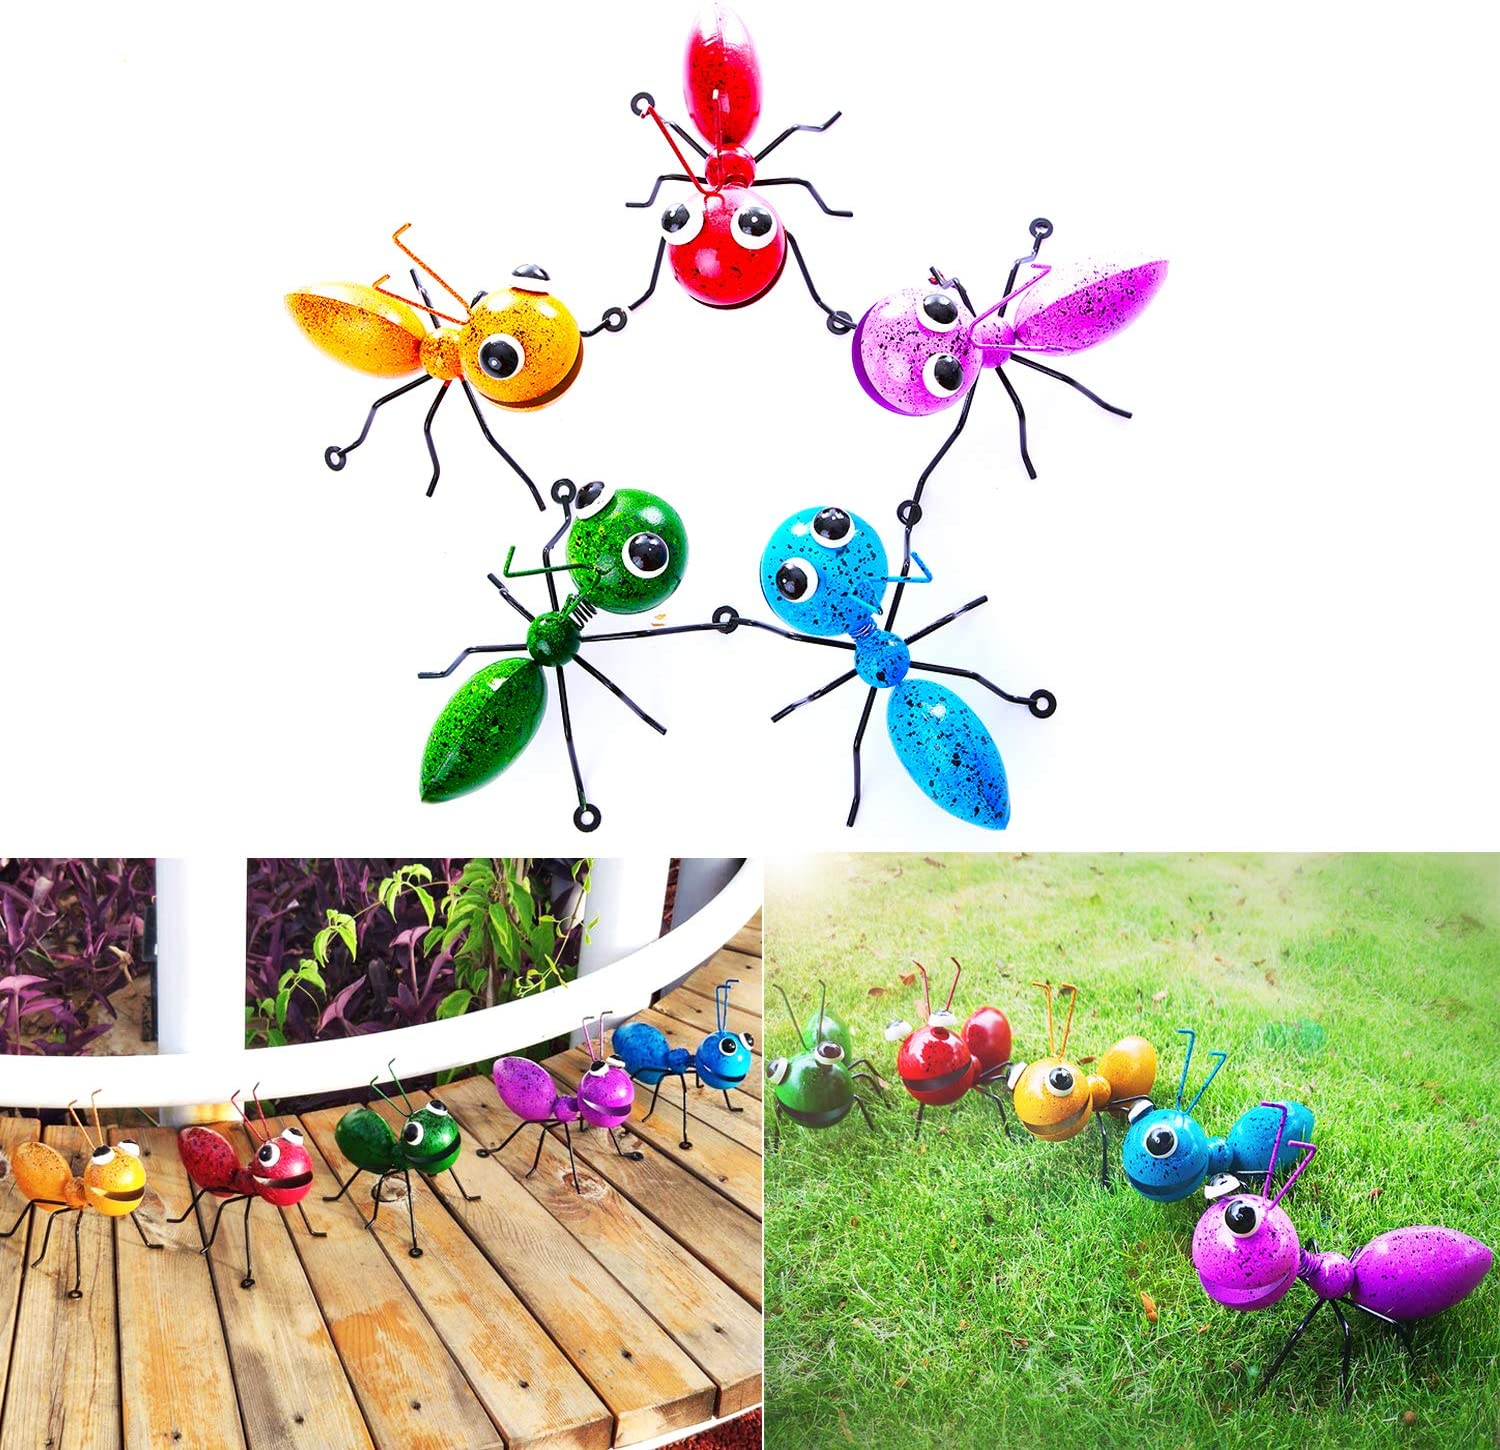 MYJAQI 3D Colorful Metal Ant Wall Decor, Room or Outdoor Garden Yard Art Wall Sculptures for Outdoor Backyard Porch Home Patio Lawn Fence Decorations (7 Inch)